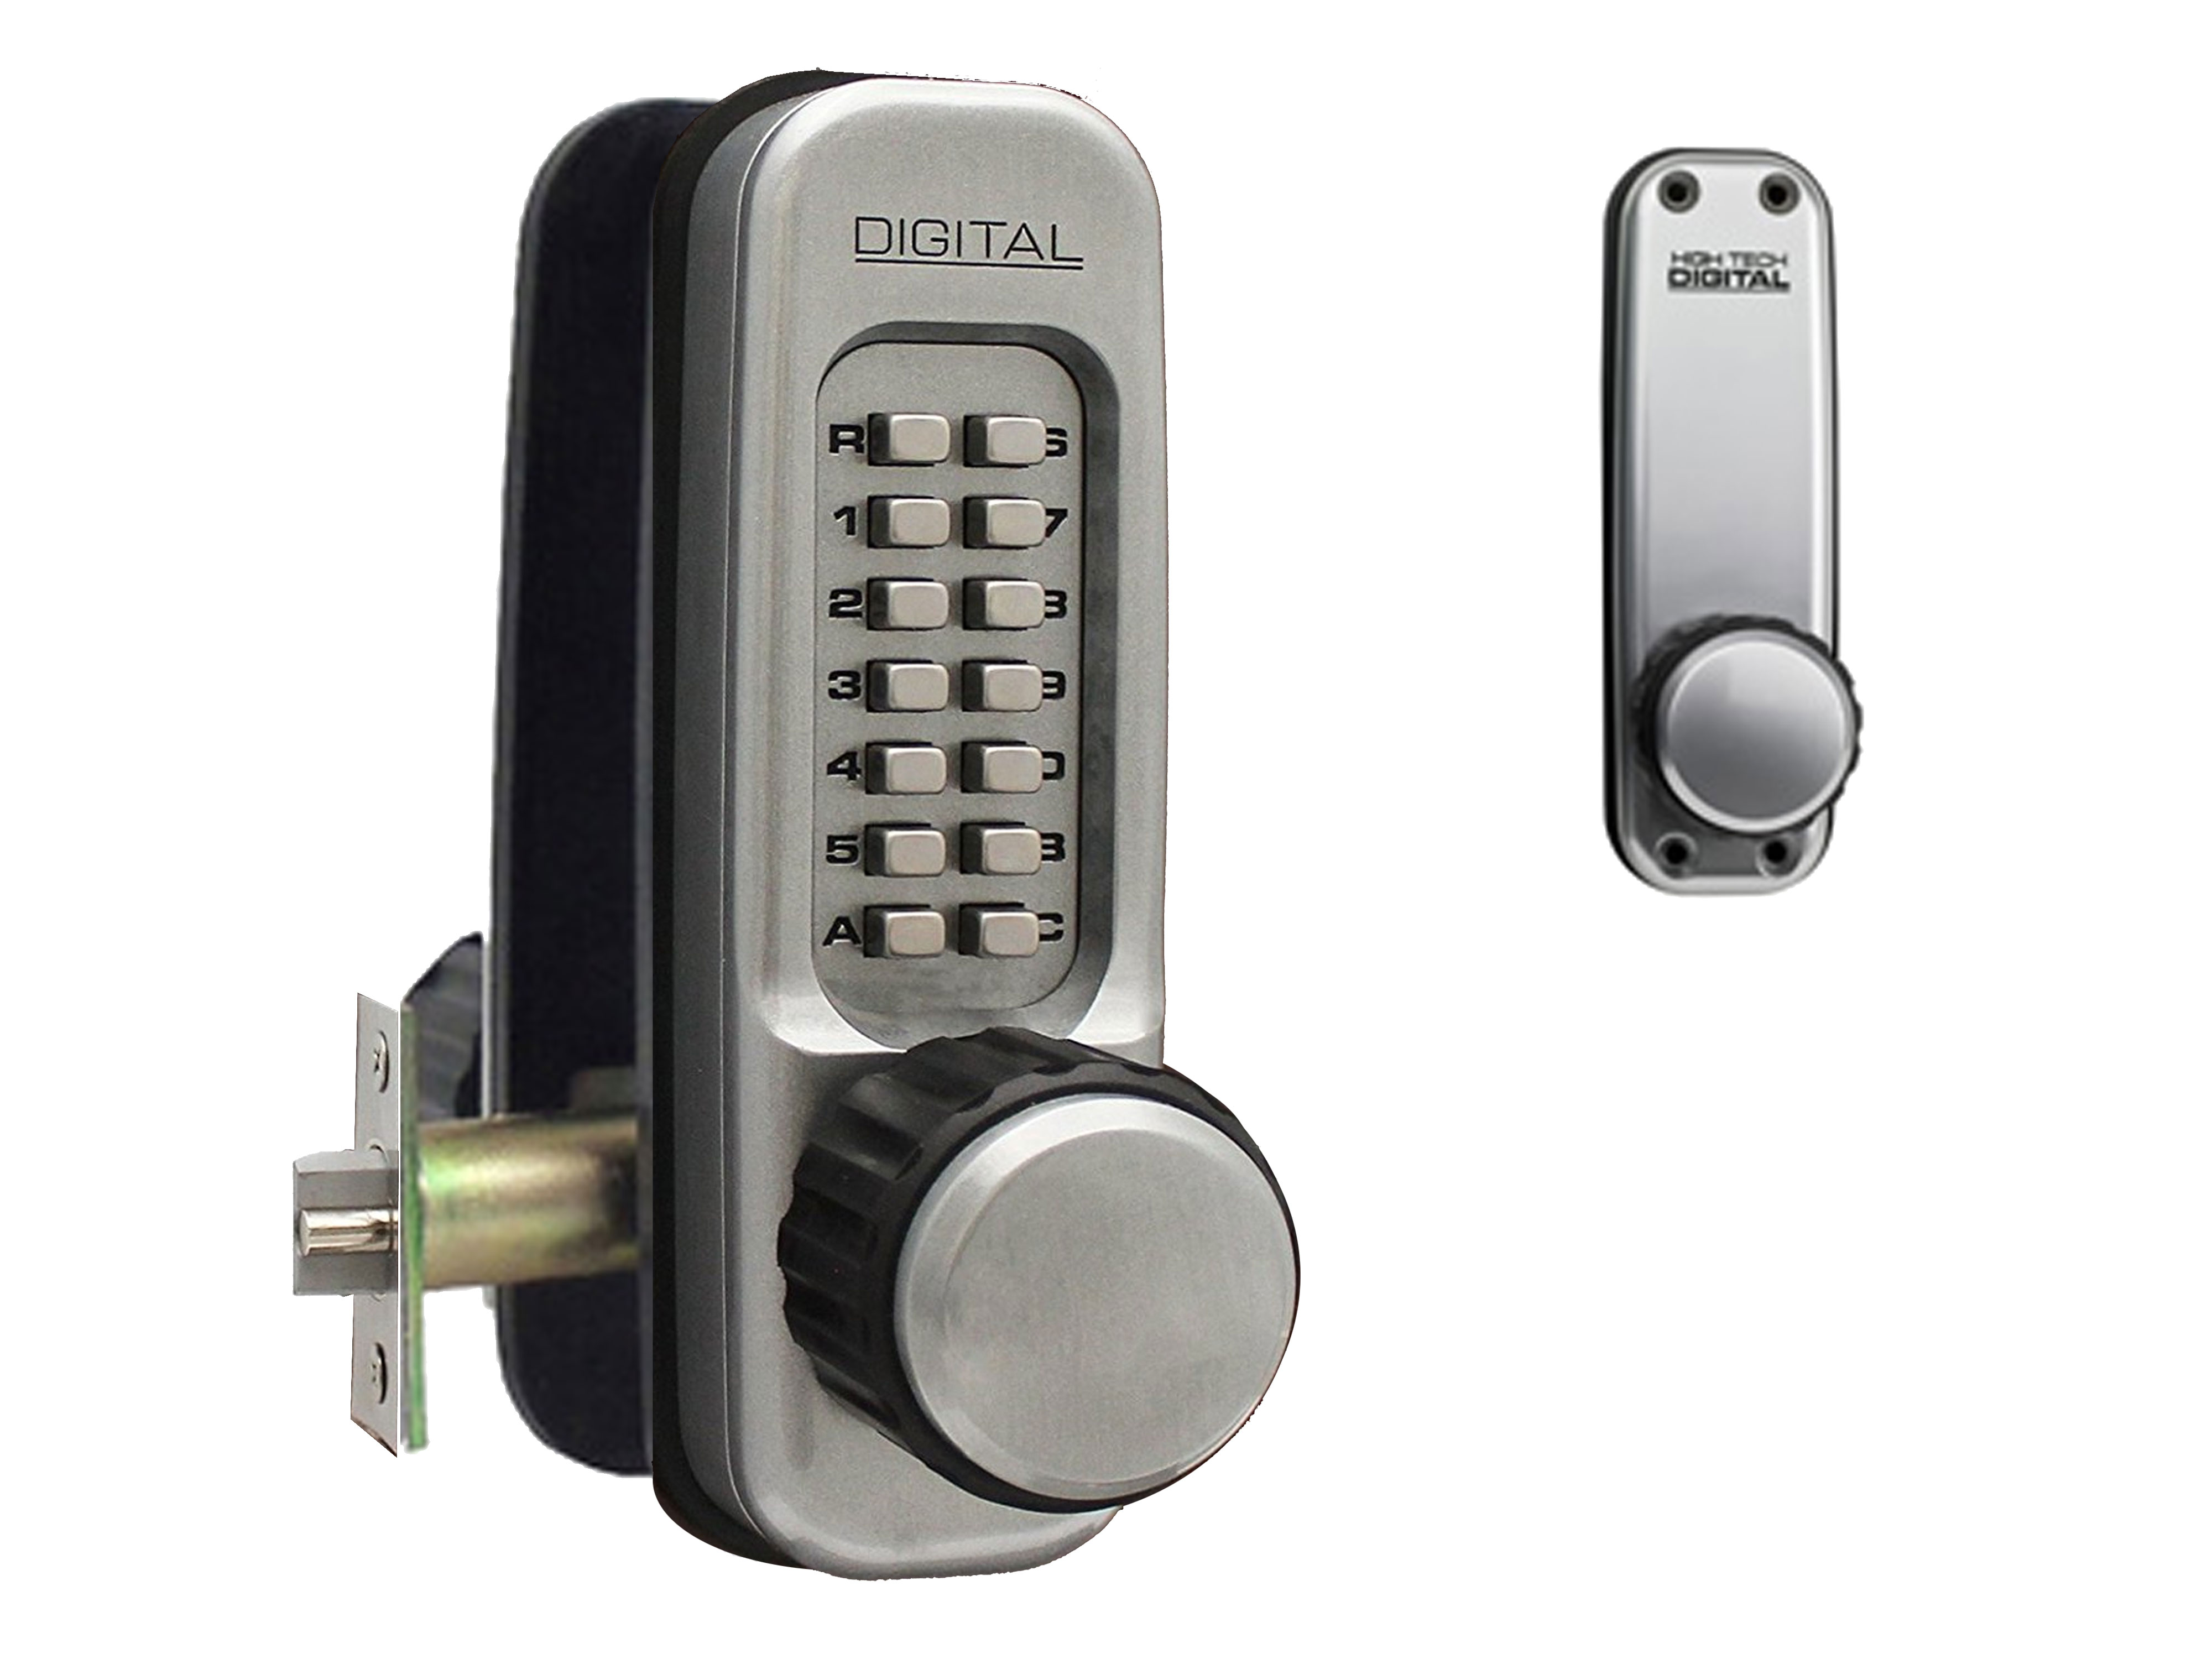 Lockey 1600 Heavy-Duty Passage Knob-Handle Latchbolt Keypad Lock